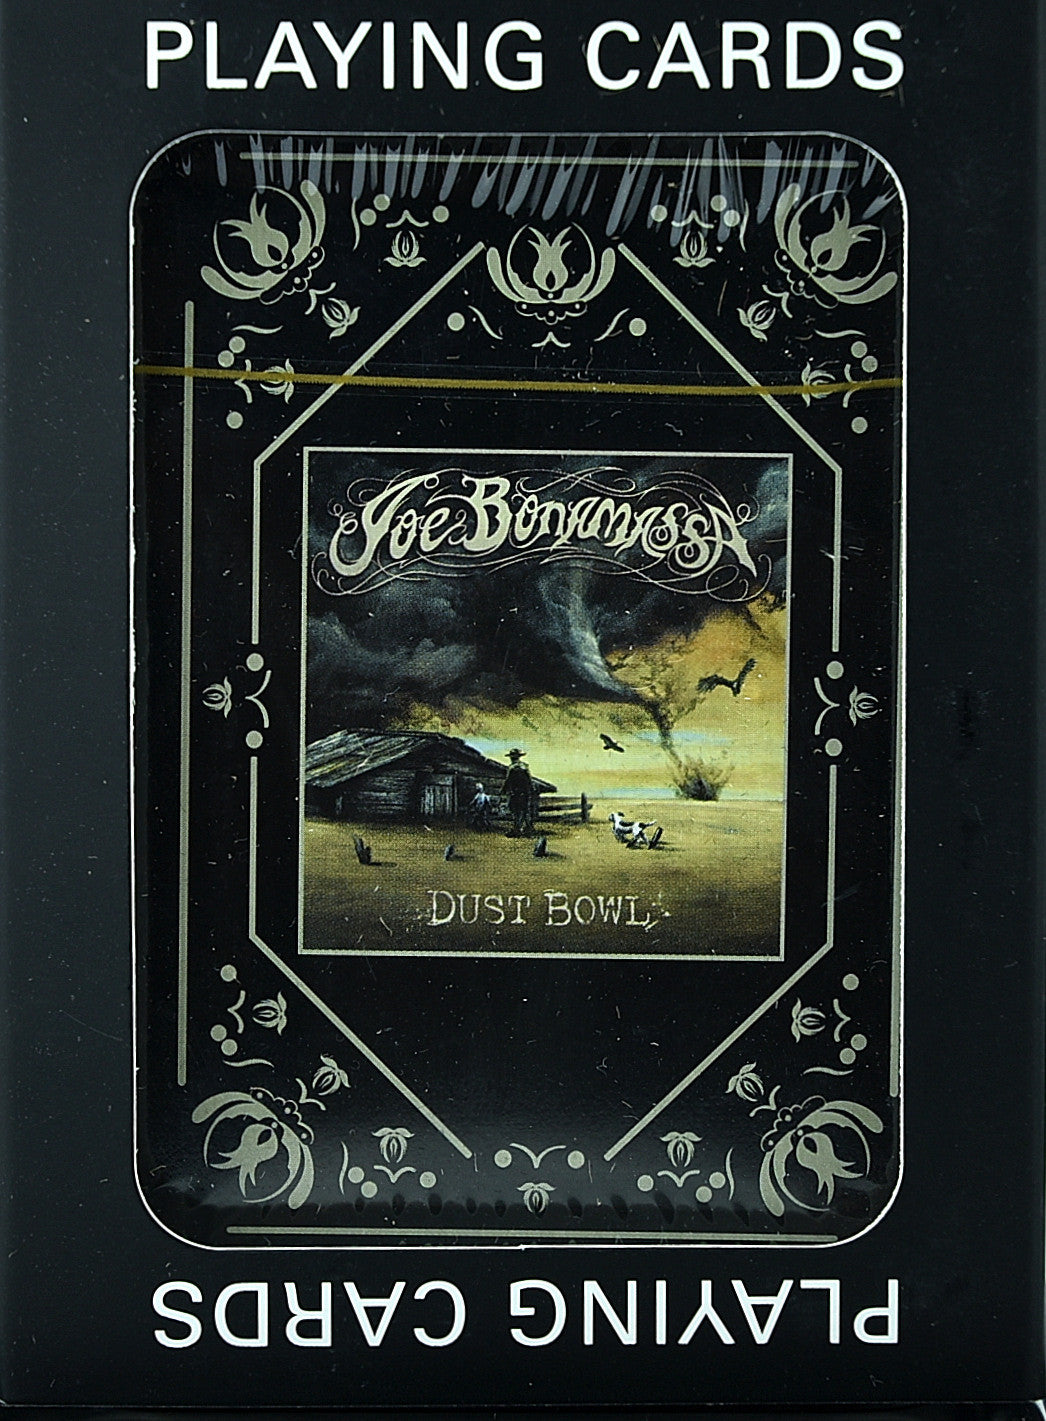 Joe Bonamassa Playing Cards - Dust Bowl Single Deck